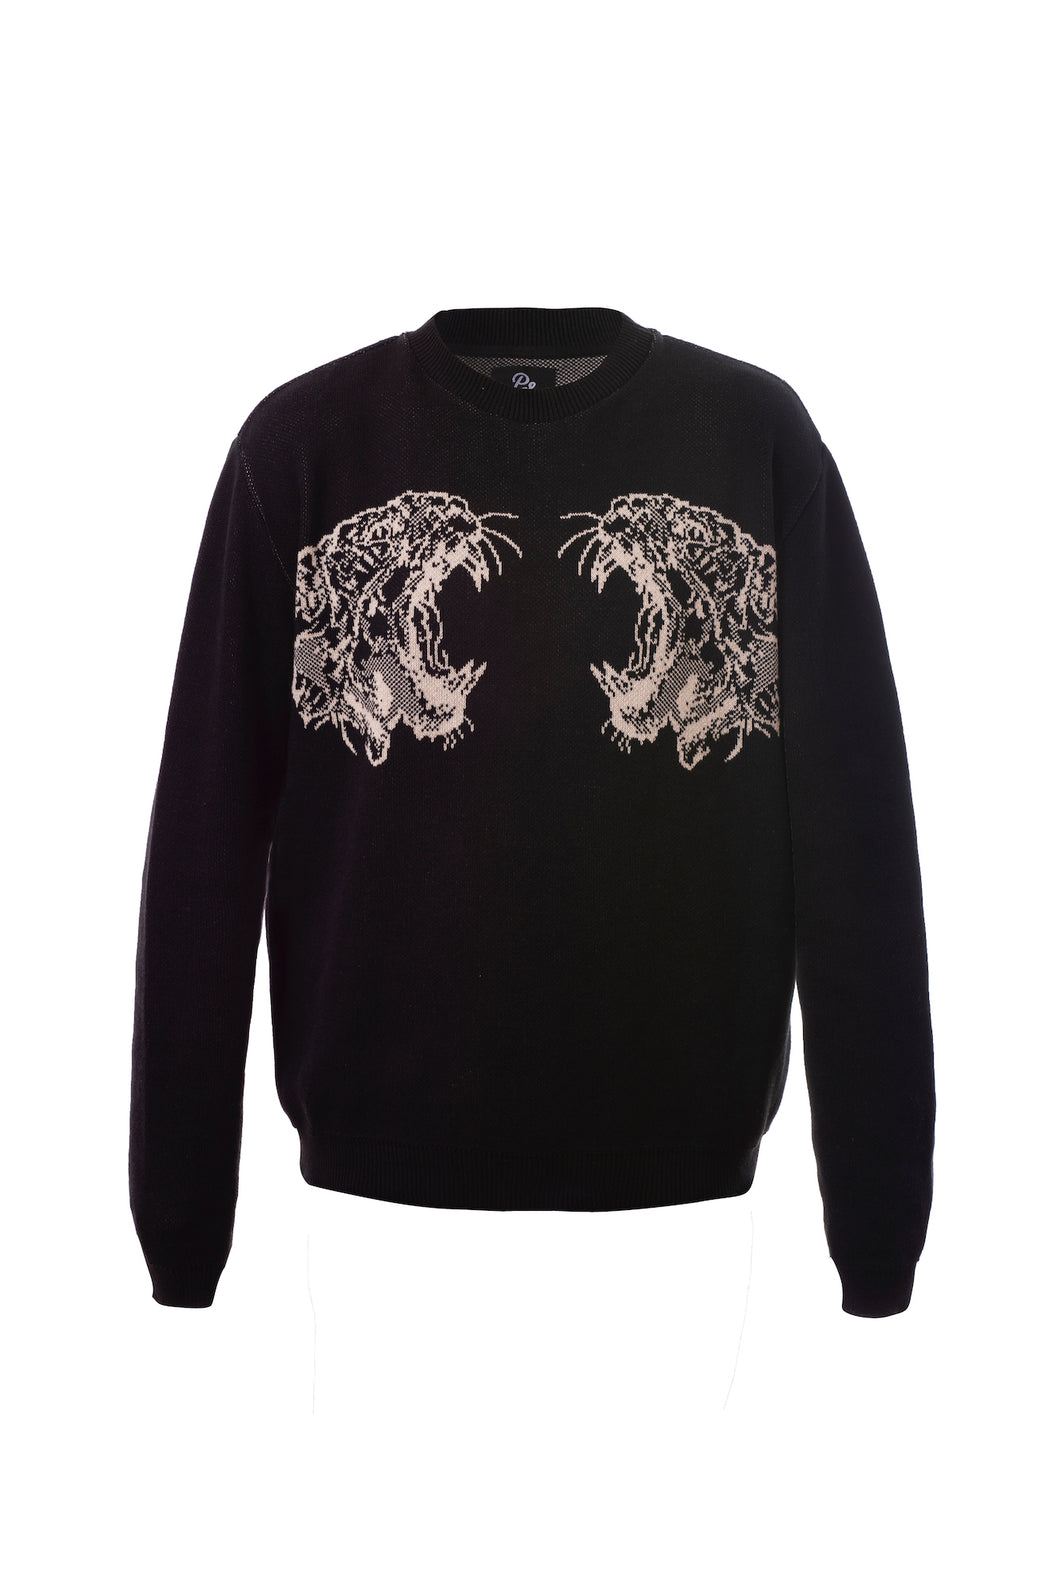 BLACK & SAND PANTERA SWEATER